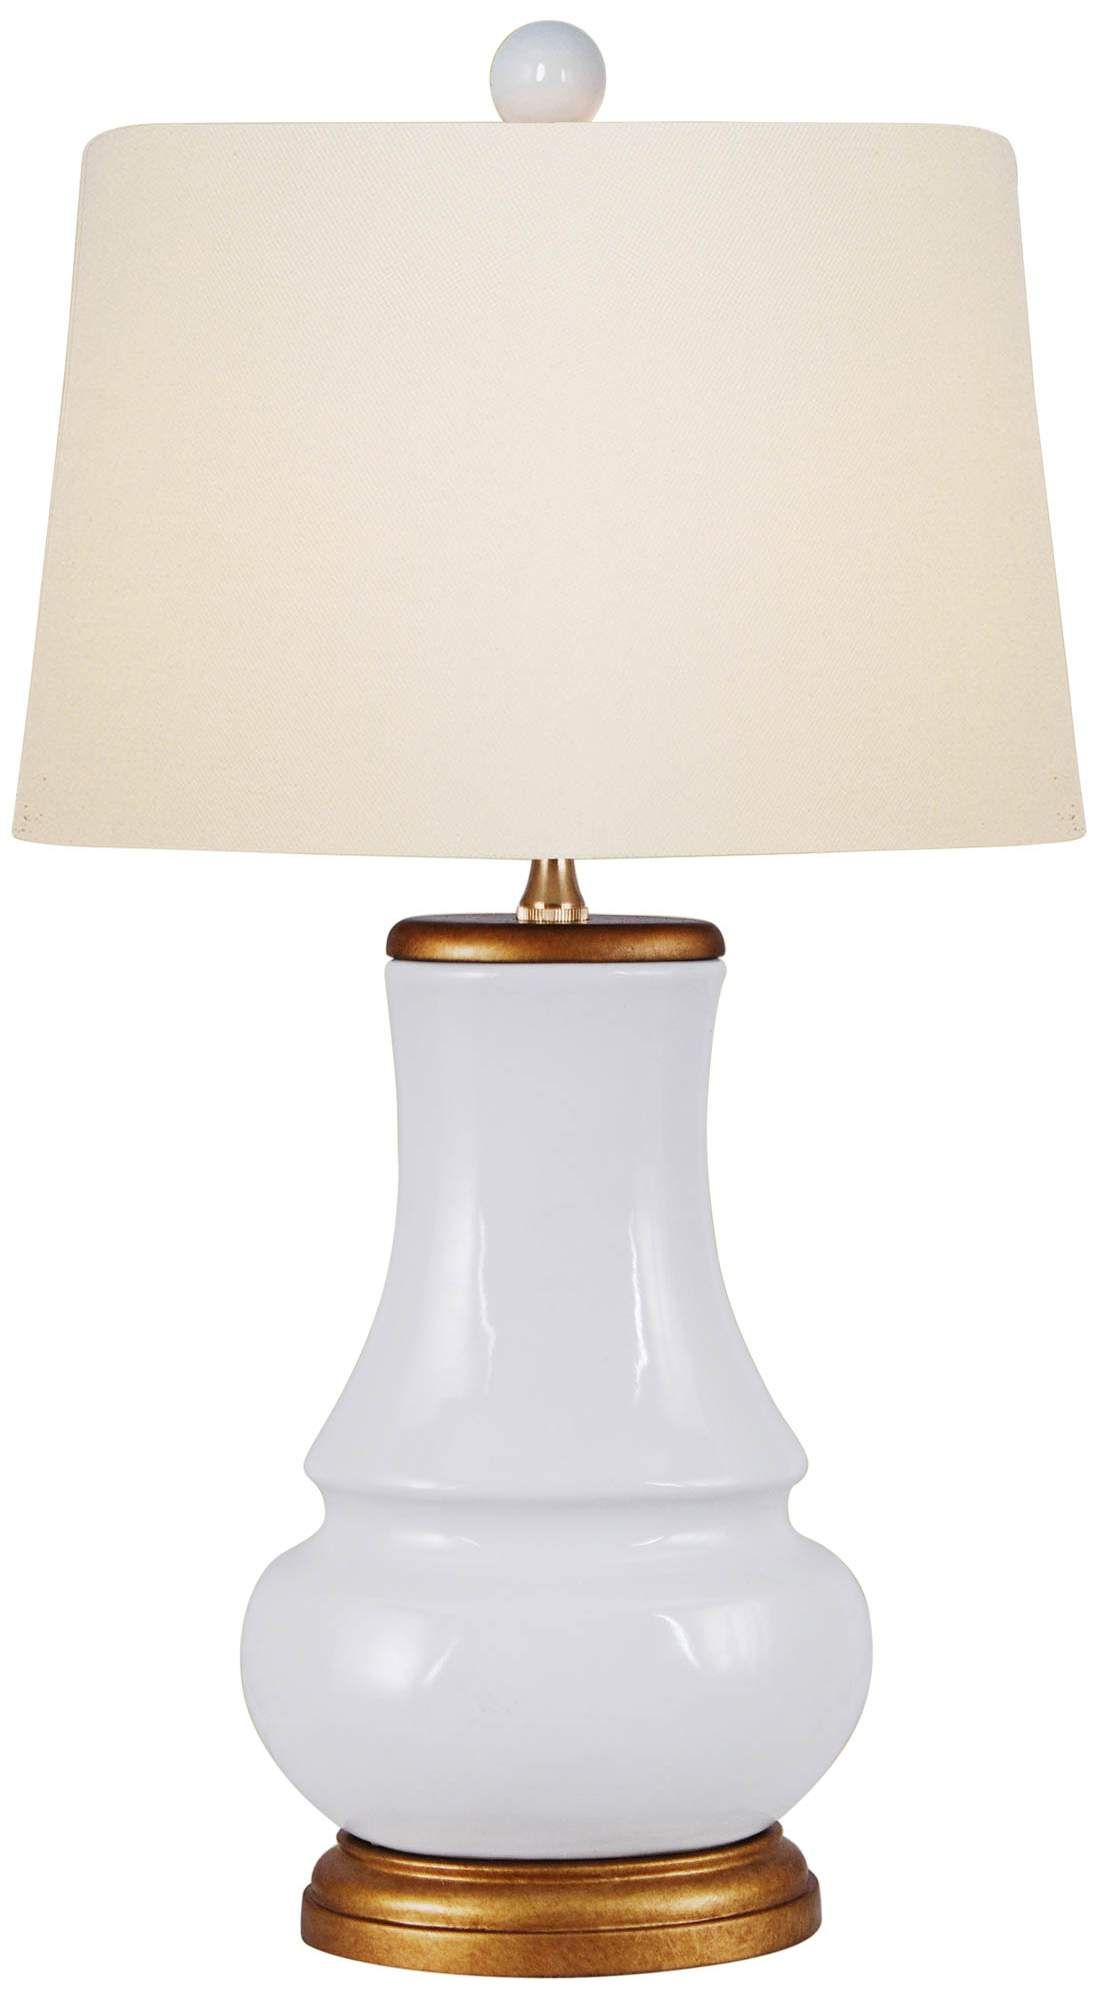 Table Lamps Barnaby White Porcelain Oval Gourd Accent Table Lamp In 2020 Table Lamp Lamp Accent Table